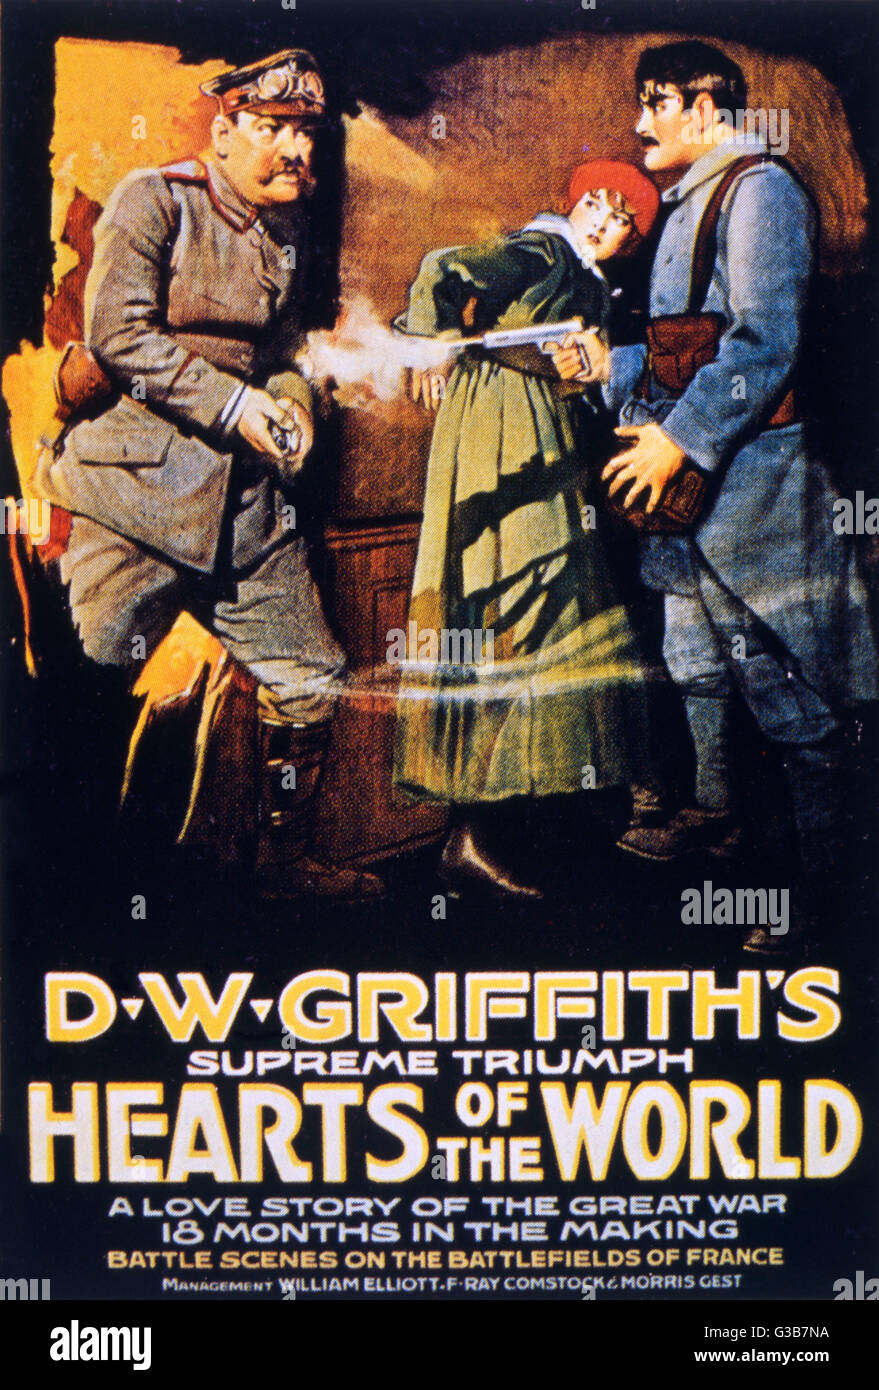 Poster for 'HEARTS OF THE  WORLD', directed by D W  Griffith, starring the two  Gishes and including Stroheim - Stock Image